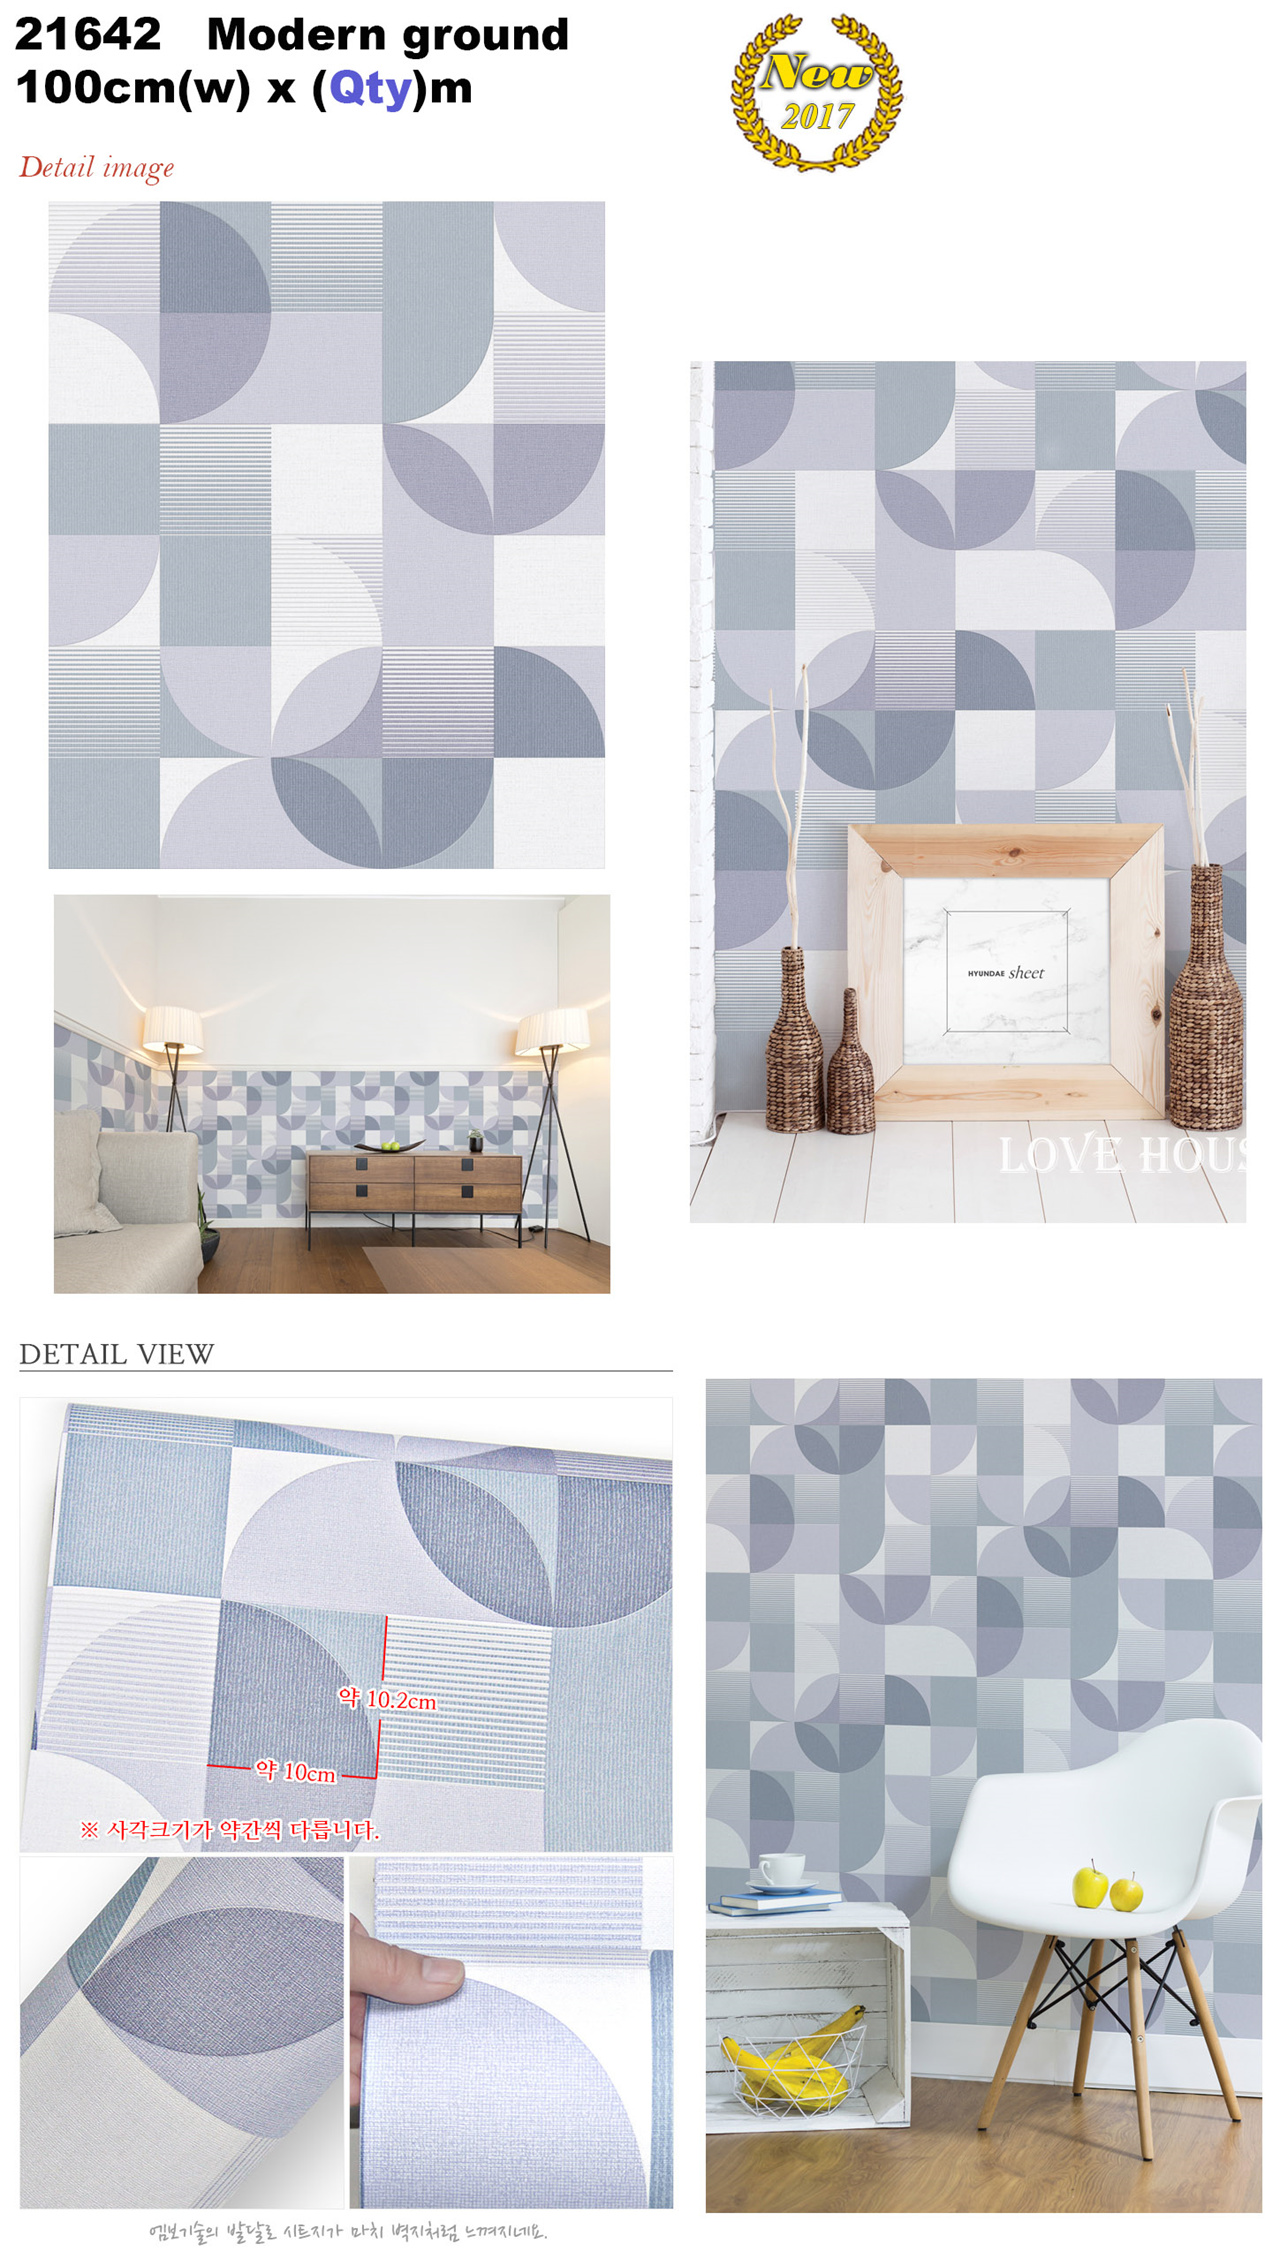 Wallpaper page1 self adhesive home decoration living diy for Wallpaper home bargains